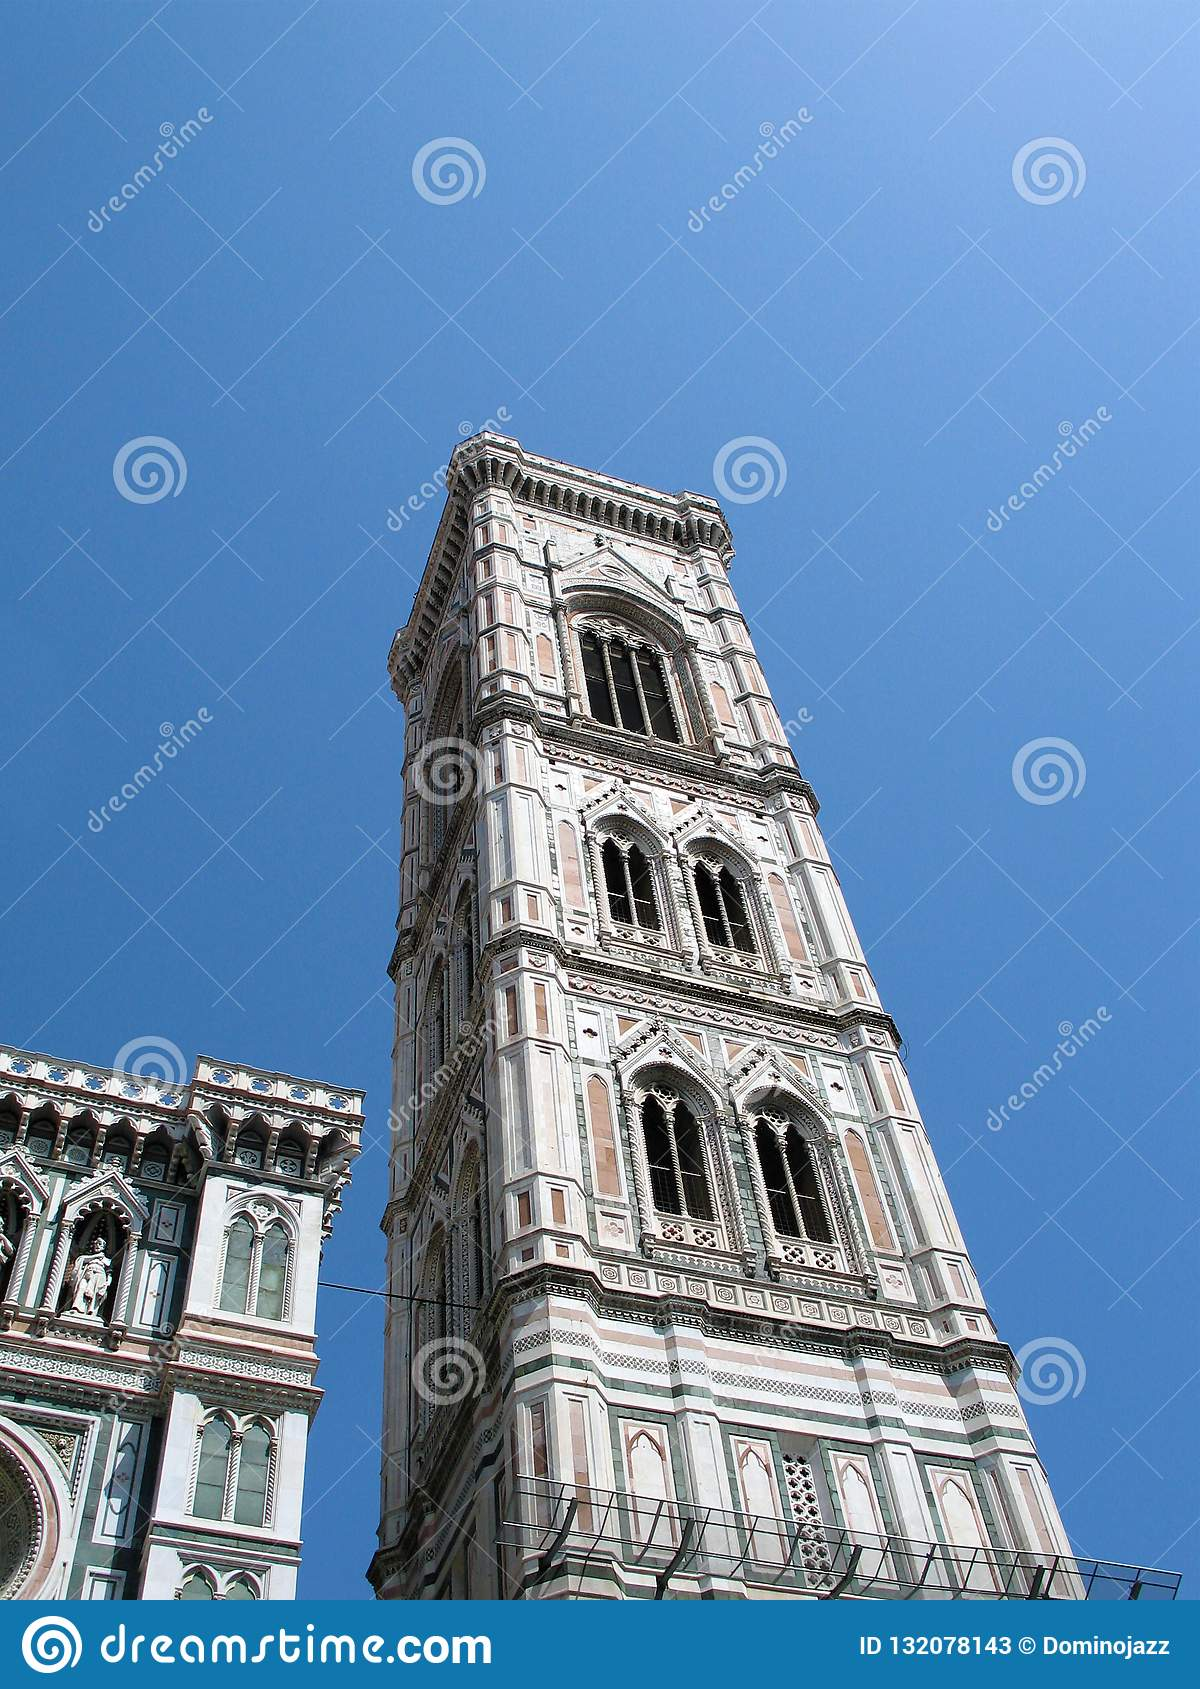 Campanile Giotto in Florence, Italy, fourteenth century masterpiece of architecture